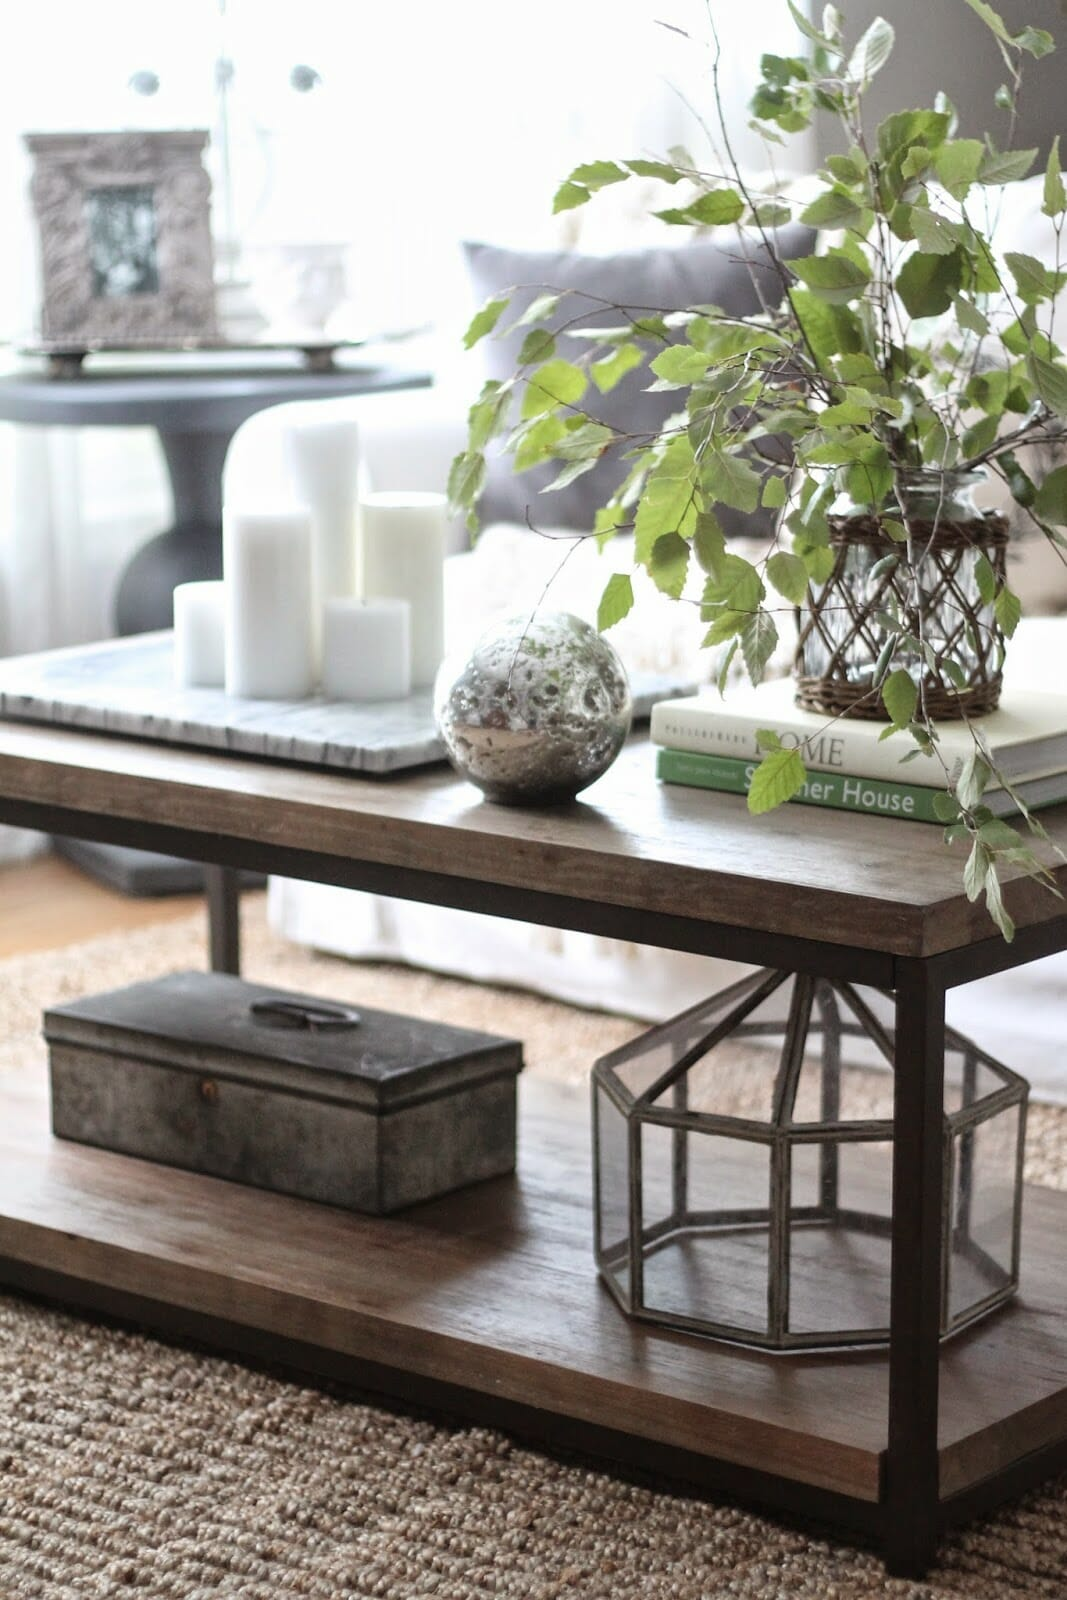 The Seven Most Asked About Items in Our Home